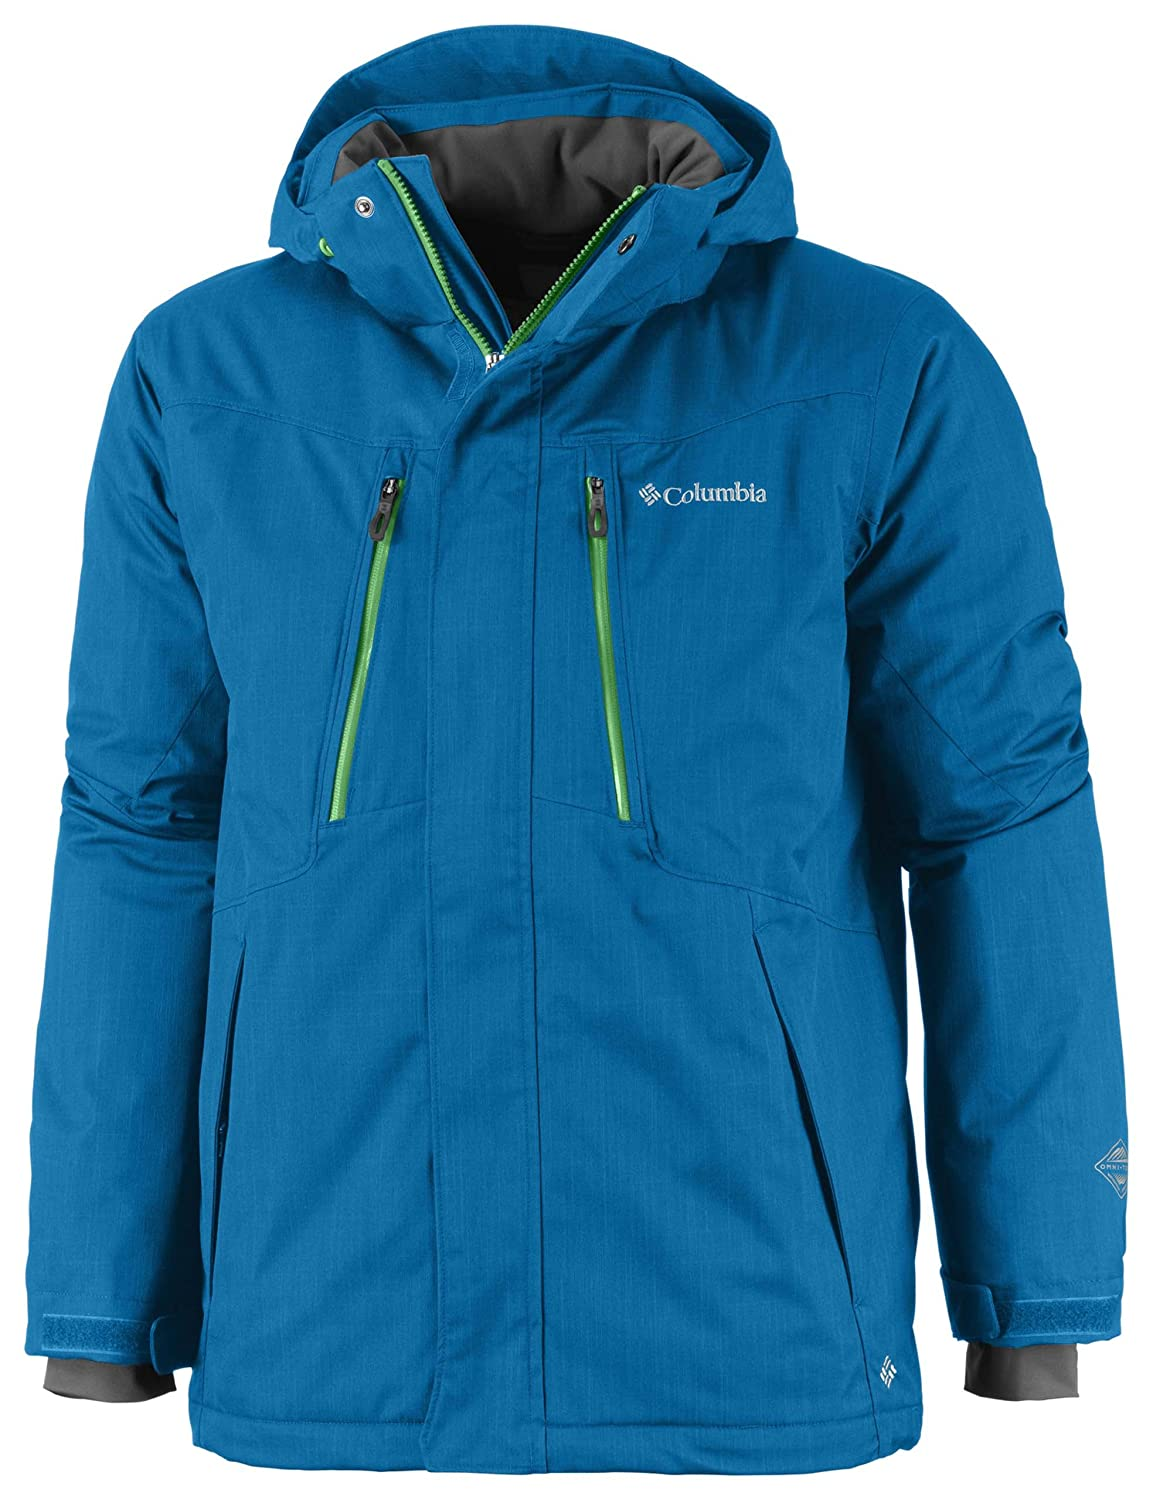 Columbia Men's Alpine Action Jungen Jacke S Blau - Compass Blue Melange